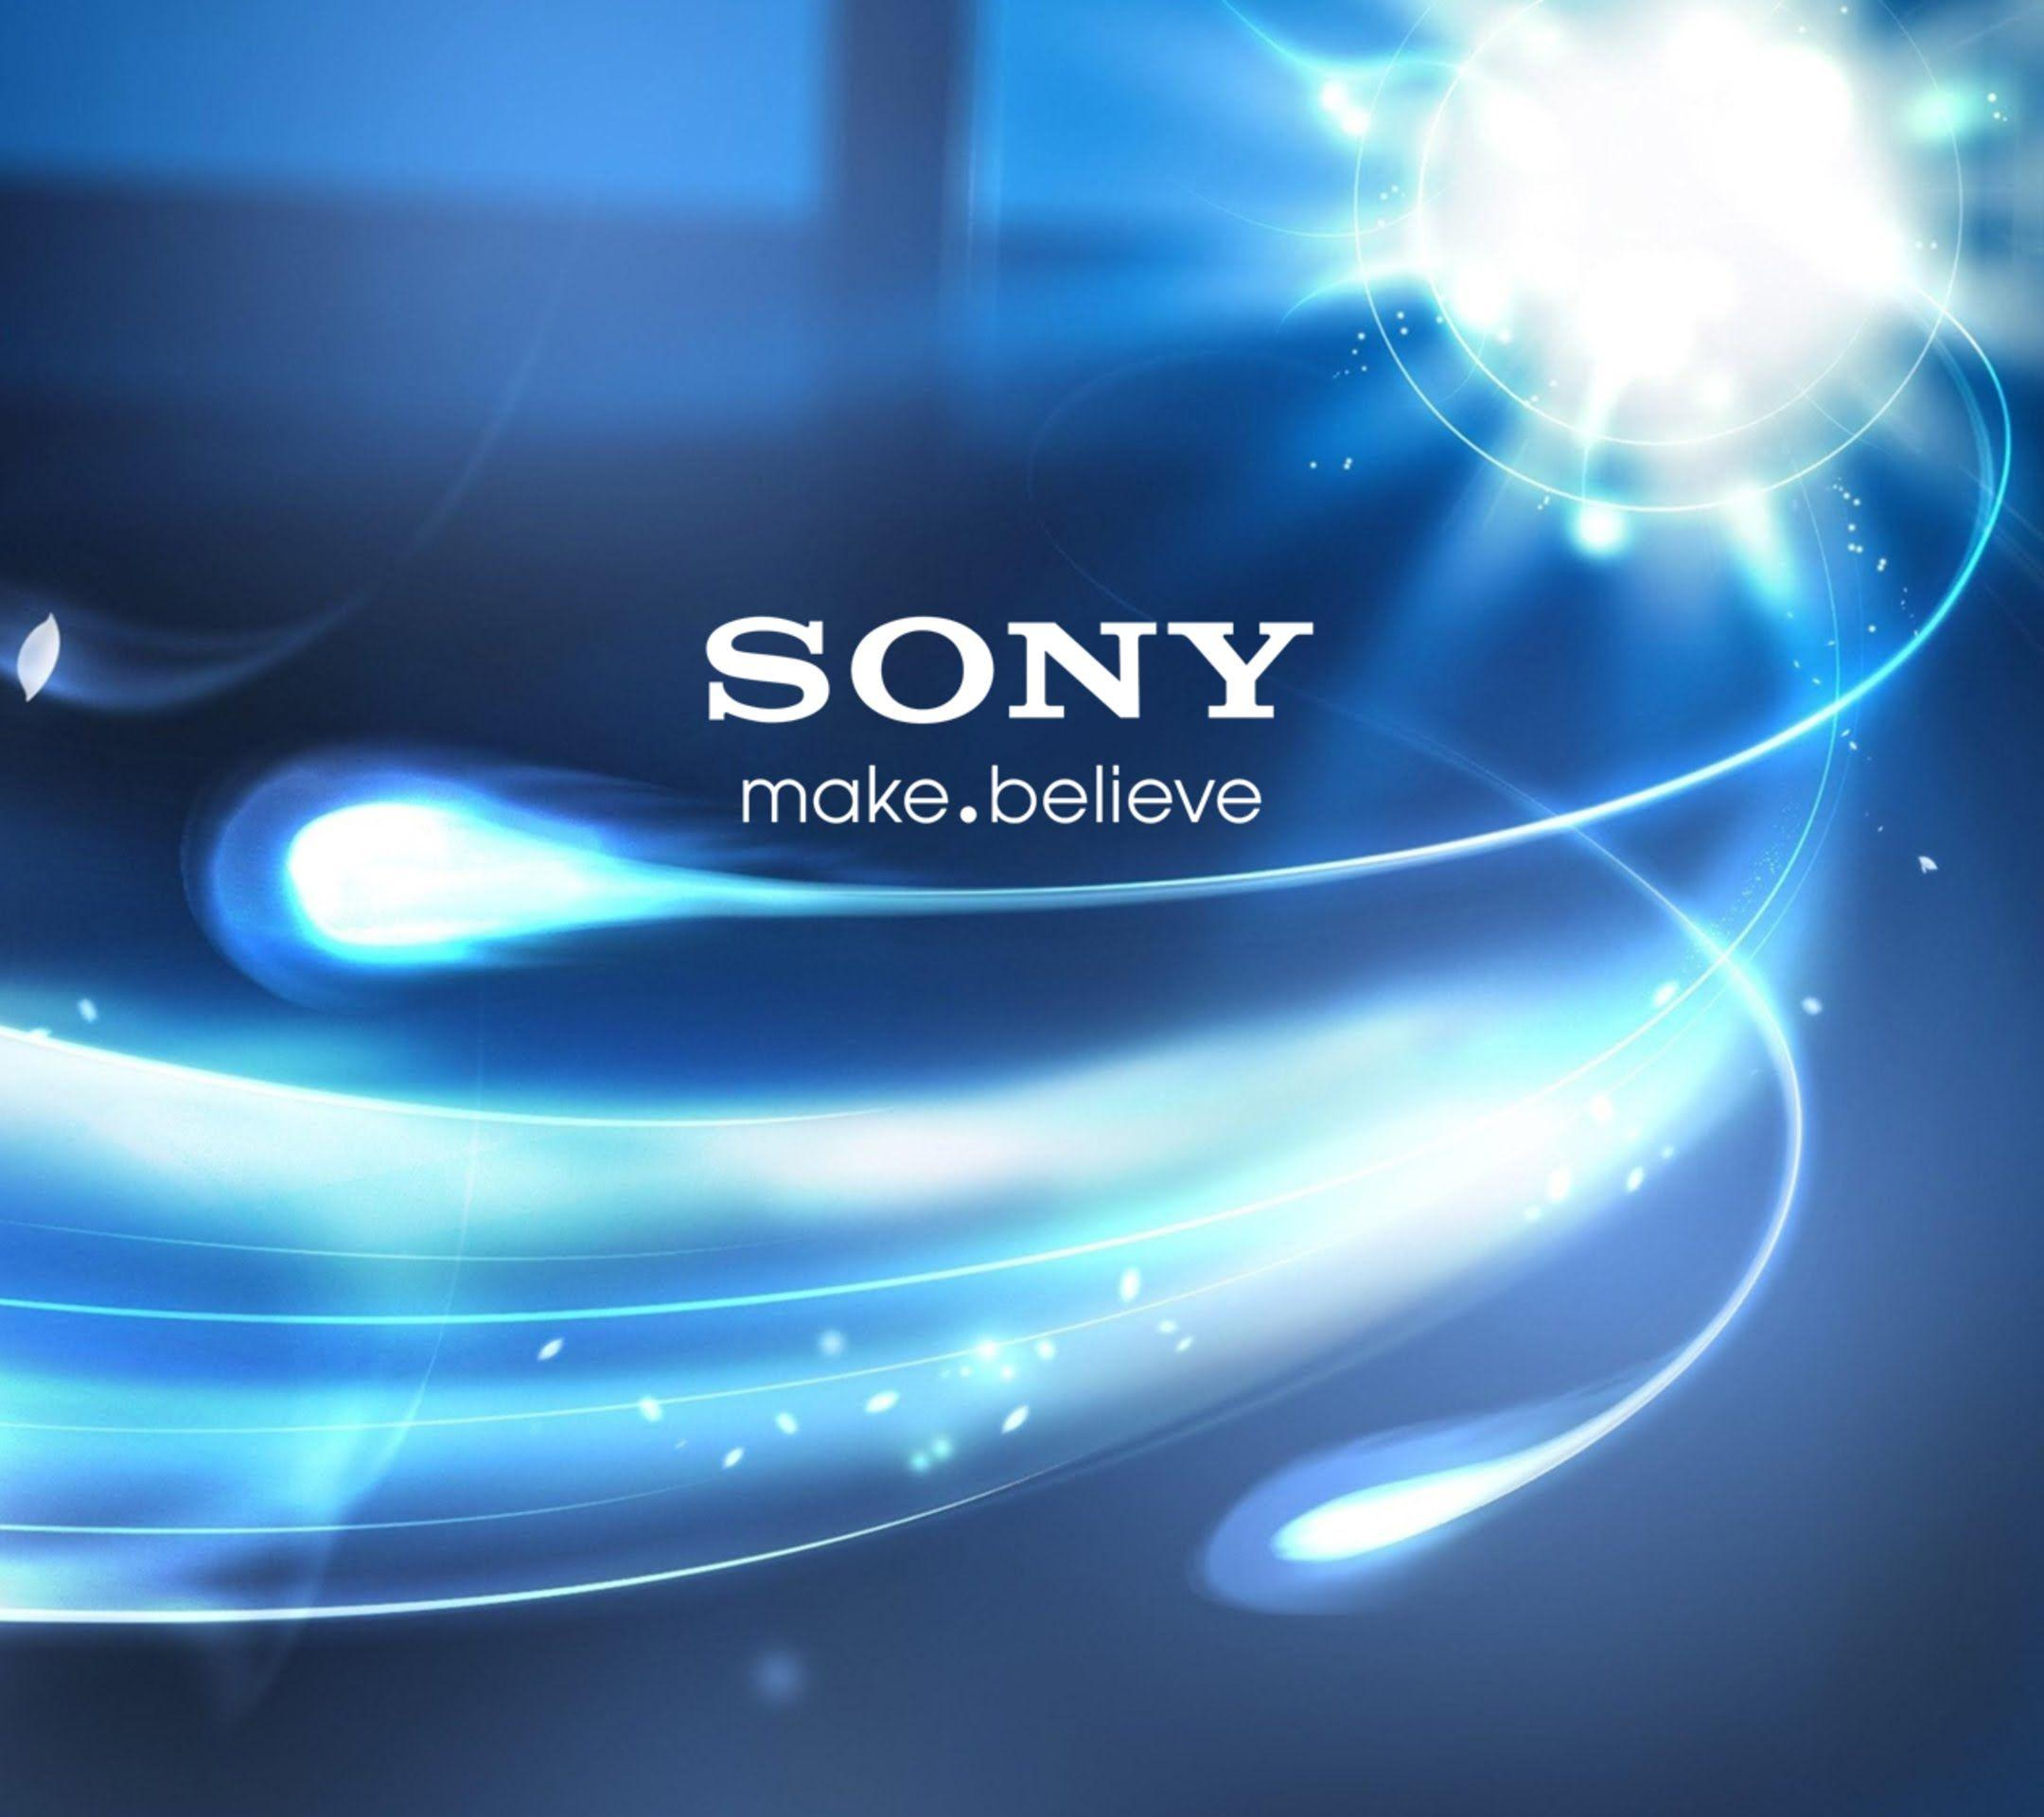 Sony logo wallpapers wallpaper cave - Sony xperia z3 wallpaper hd ...